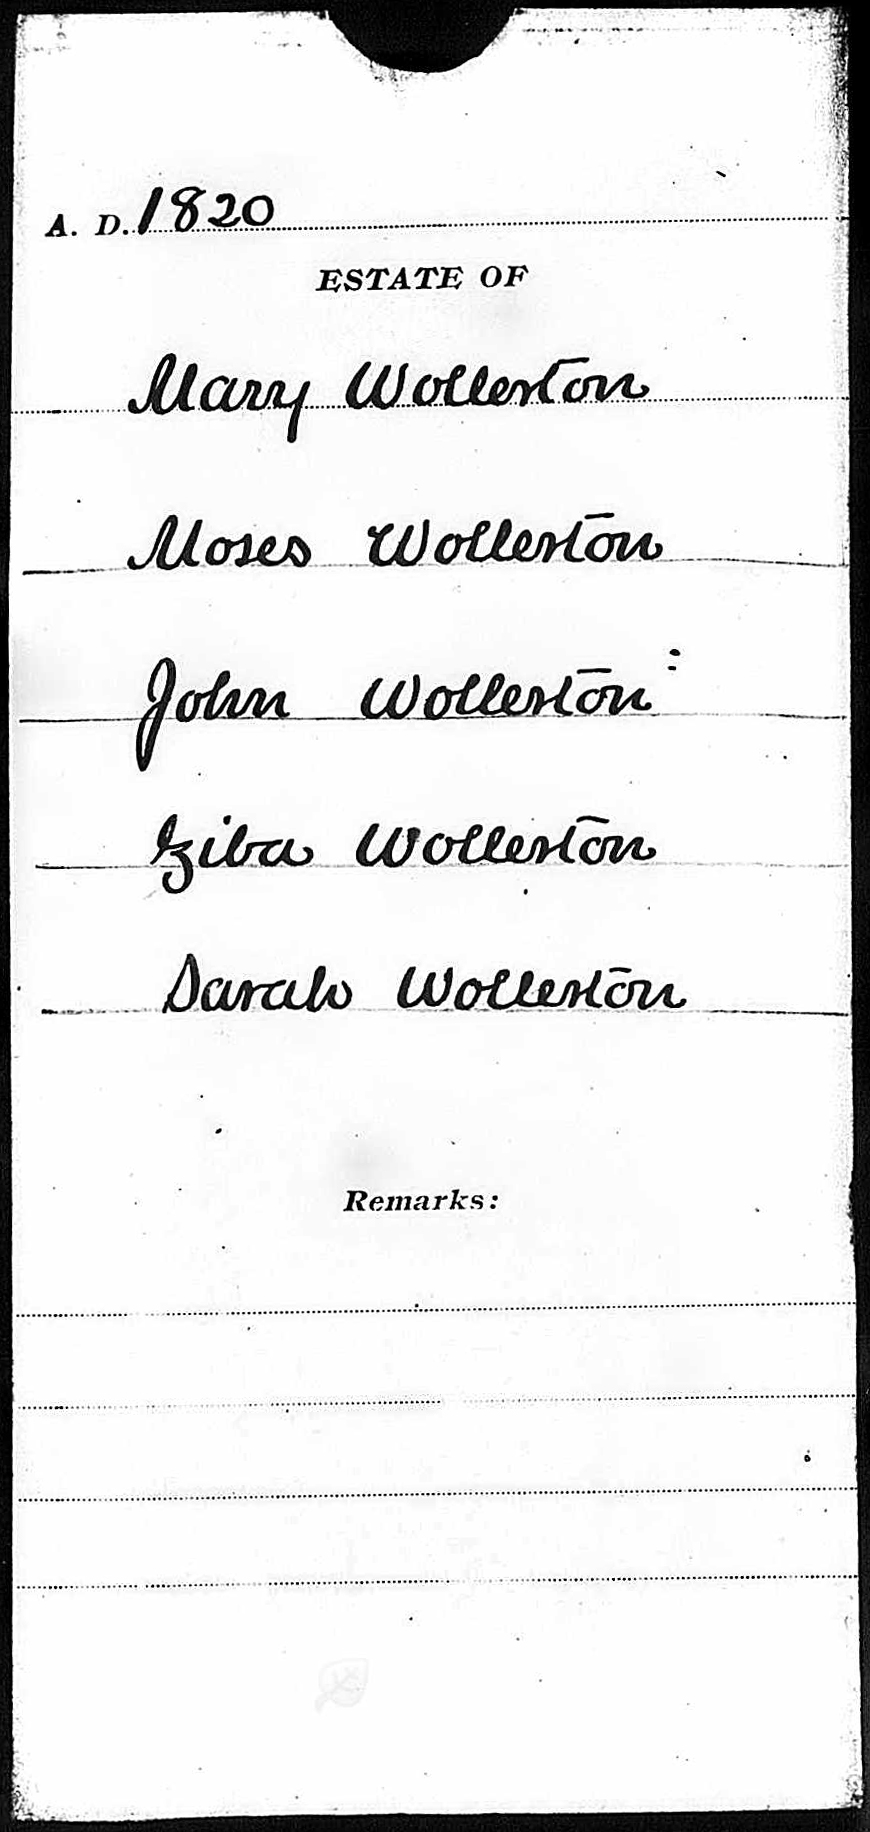 The Guaridanship of the Children of James Wollerton